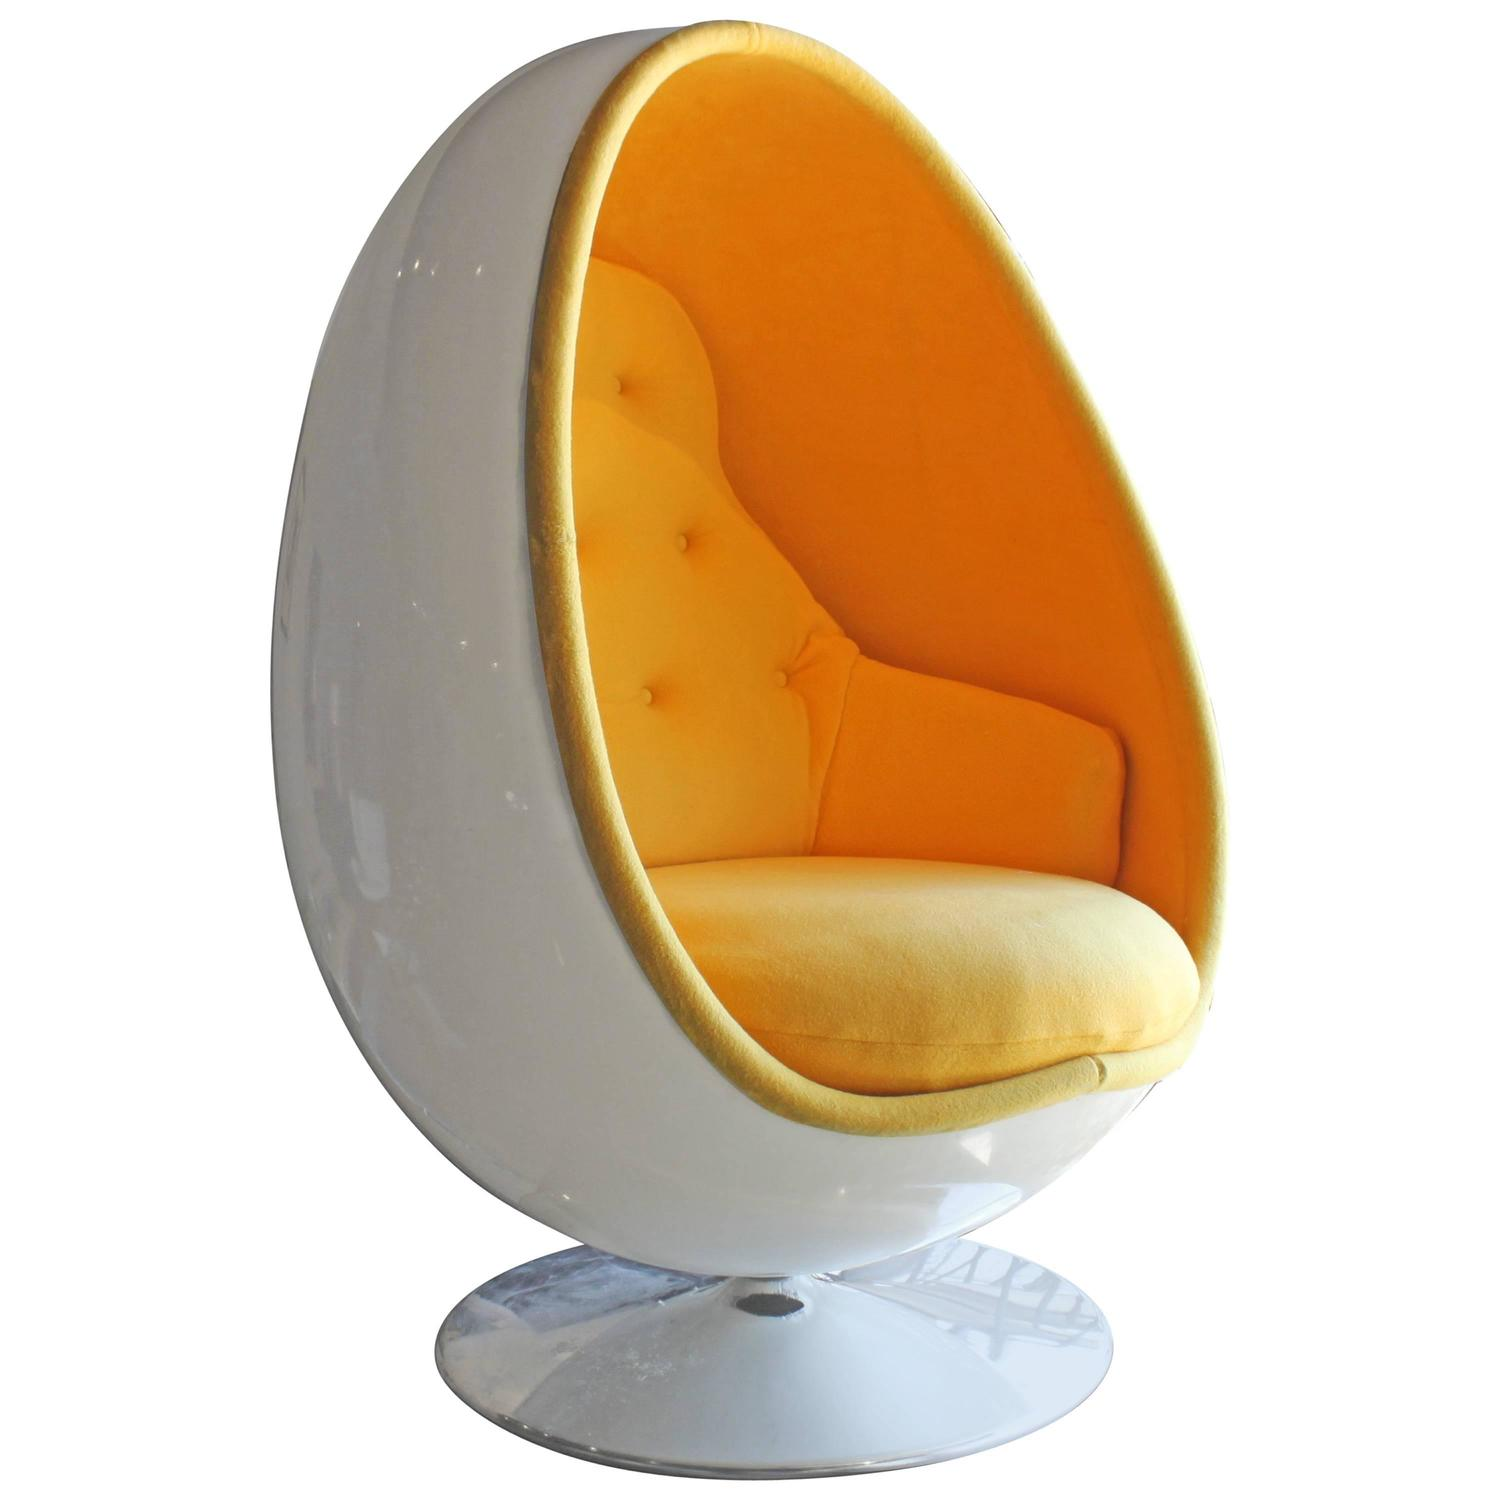 sofas egg chairs chair occasional red and